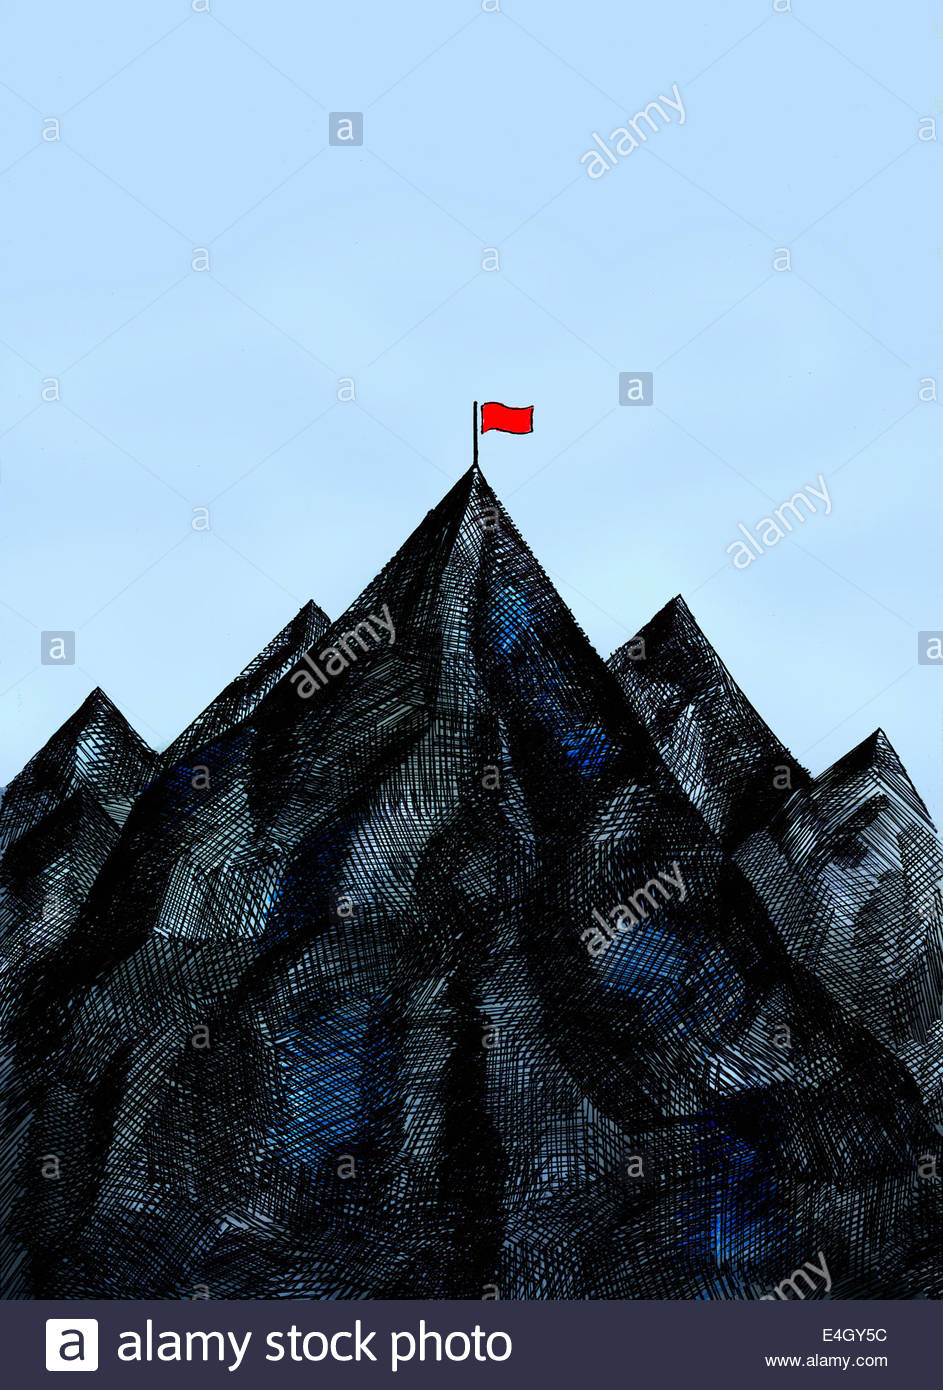 Red flag on mountain summit - Stock Image